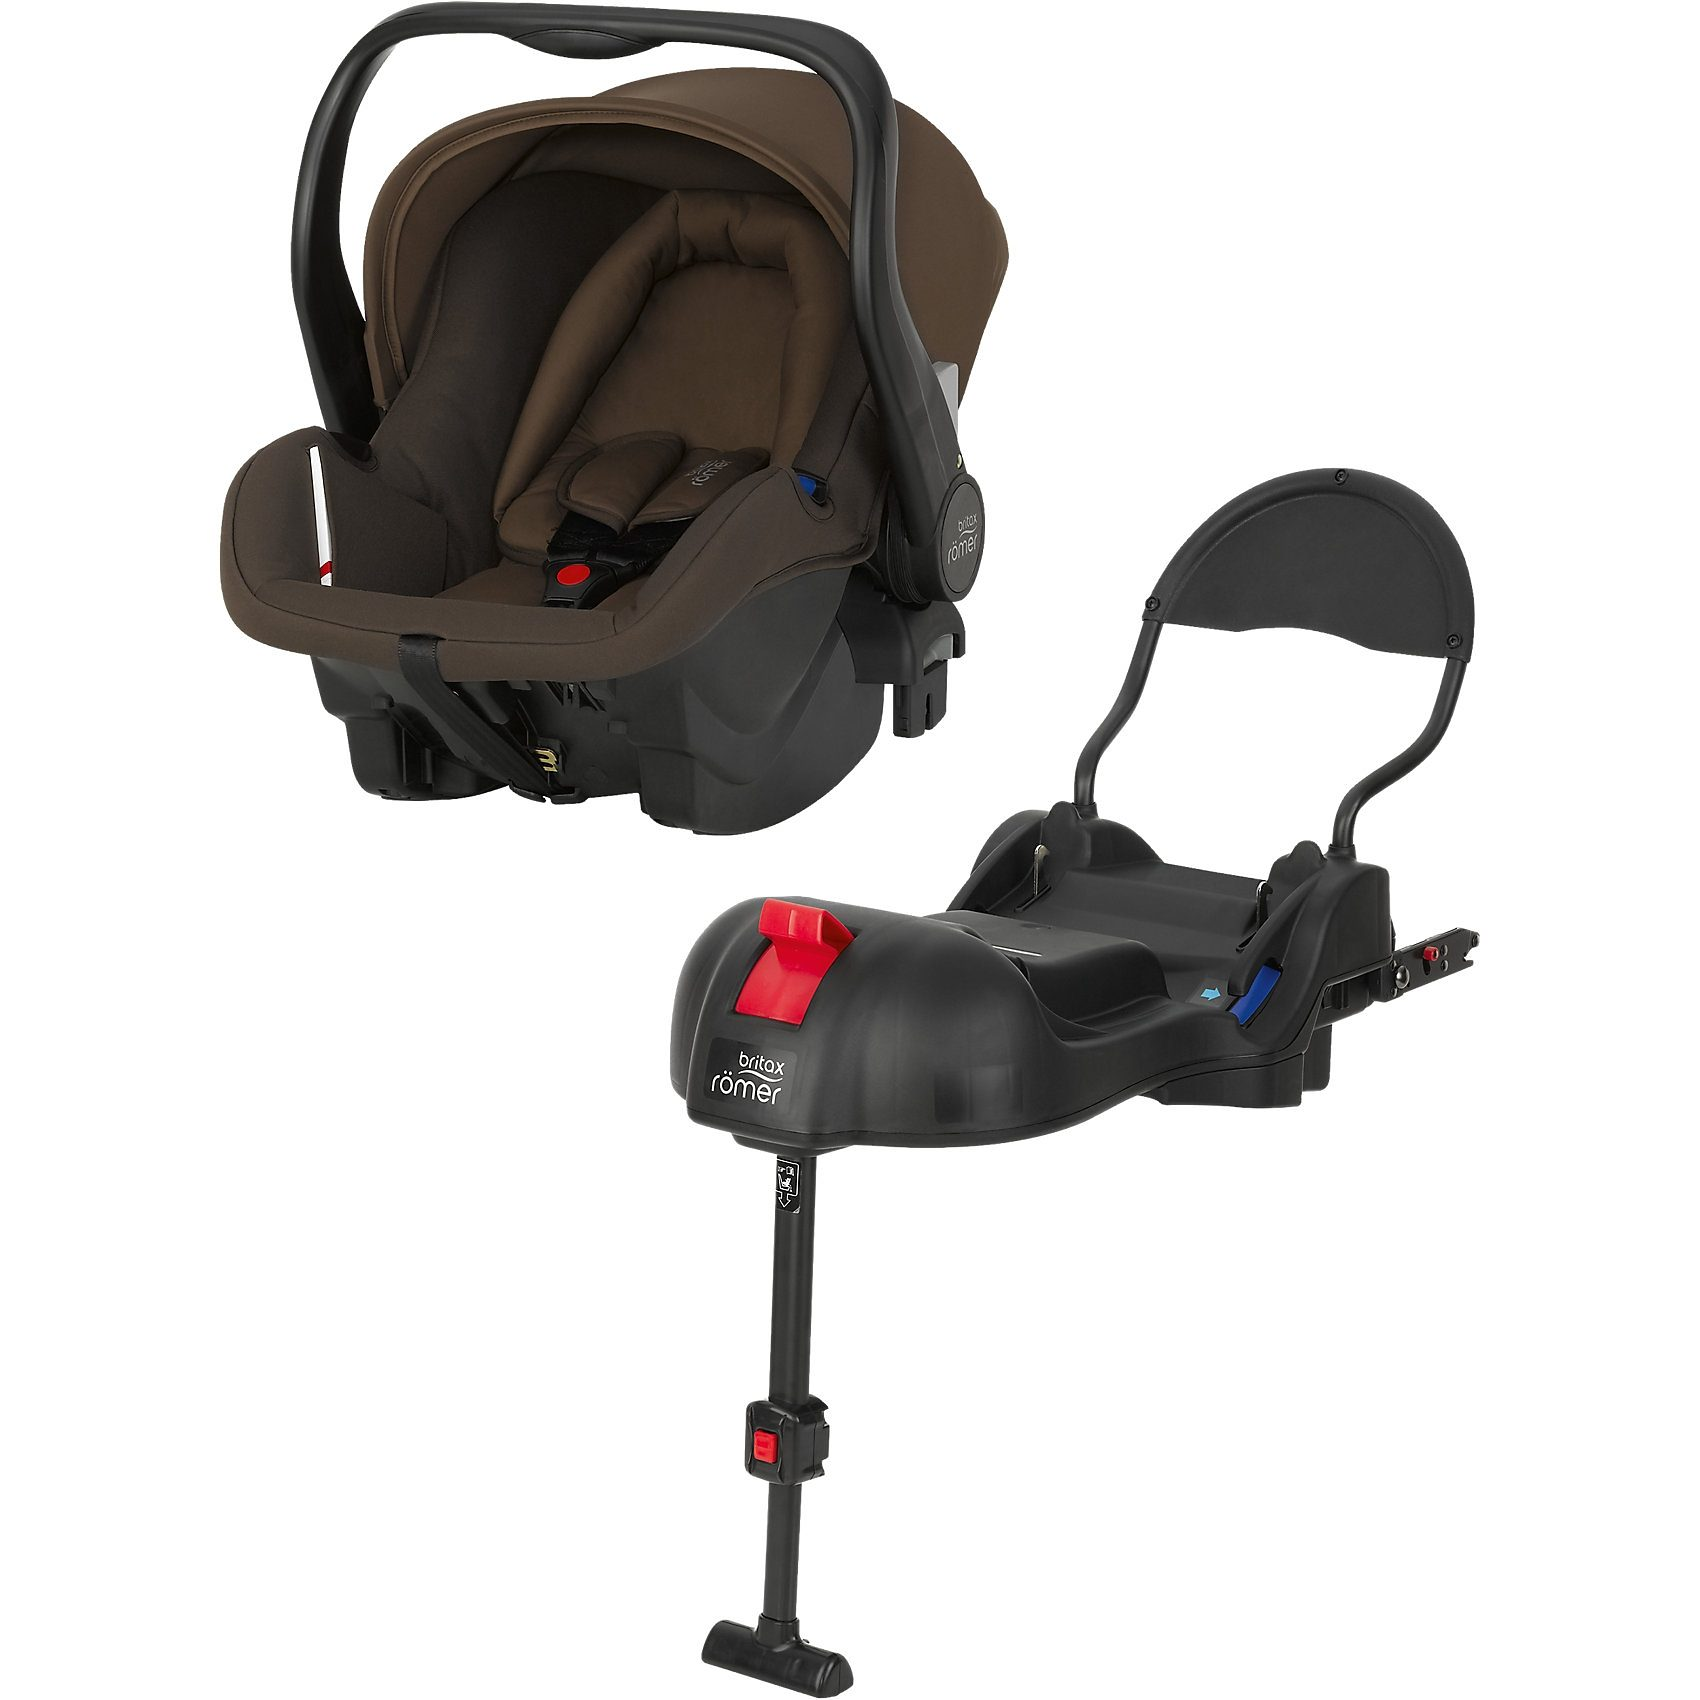 Britax Römer Babyschale Primo inkl. Basis, Wood Brown, 2016